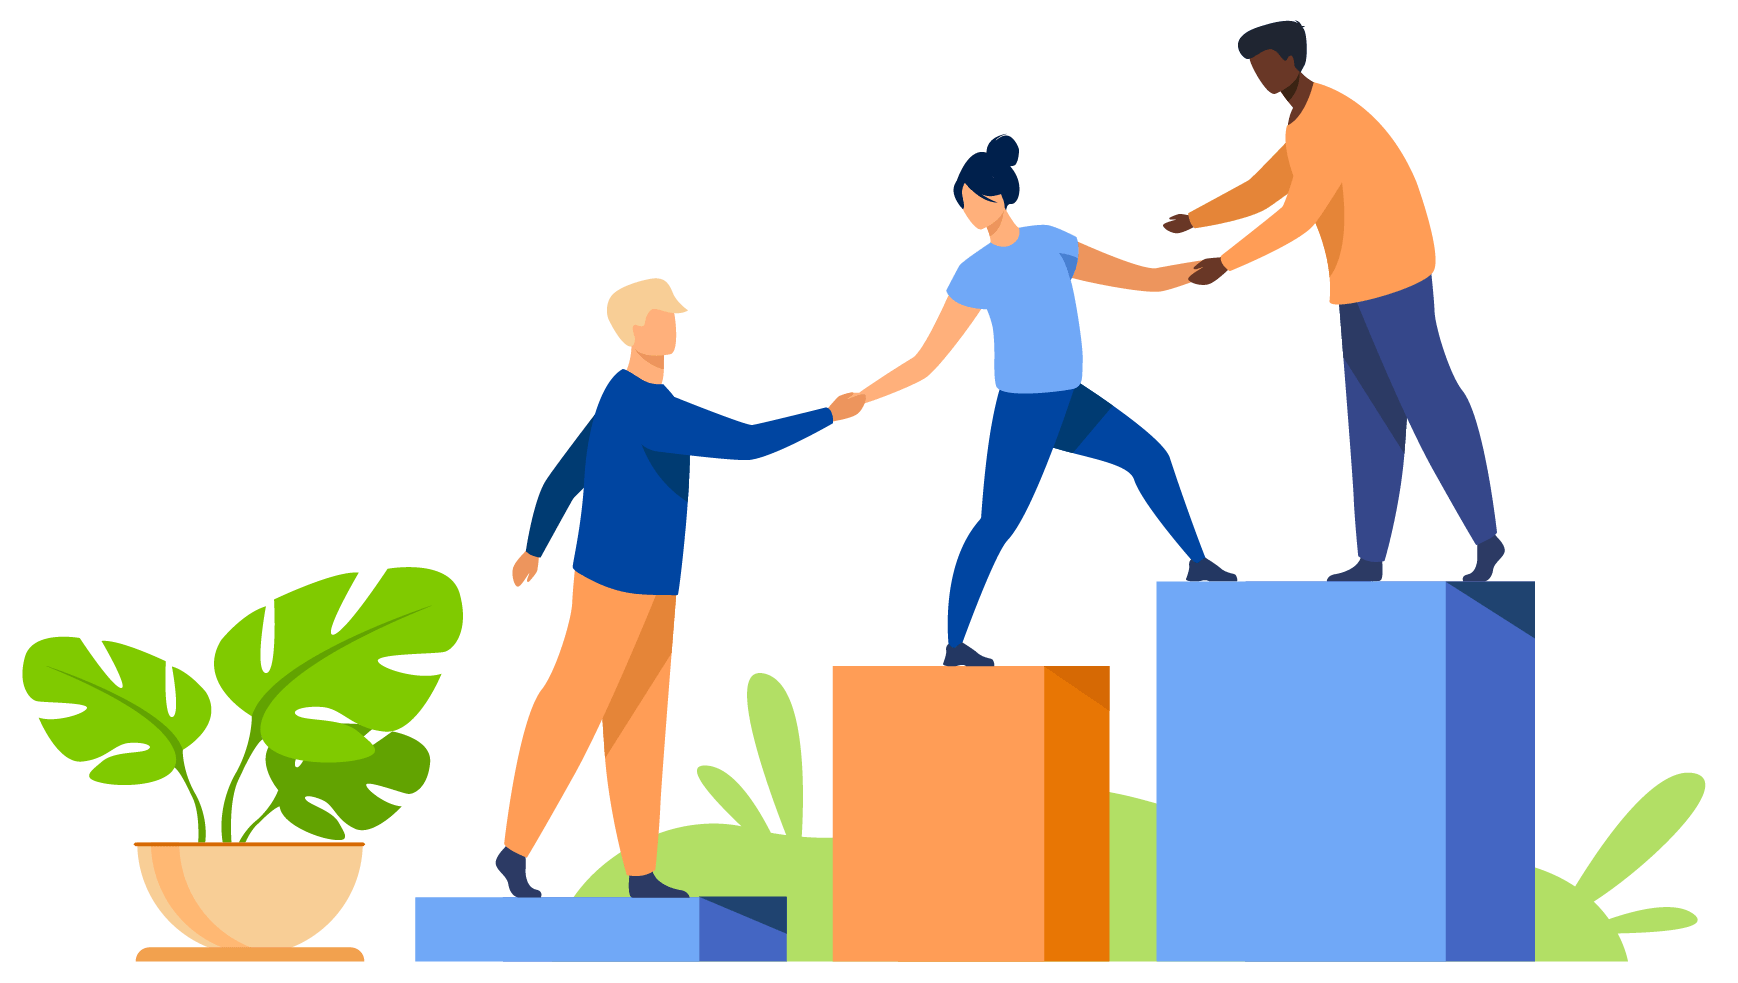 Individuals helping eachother to succeed illustration